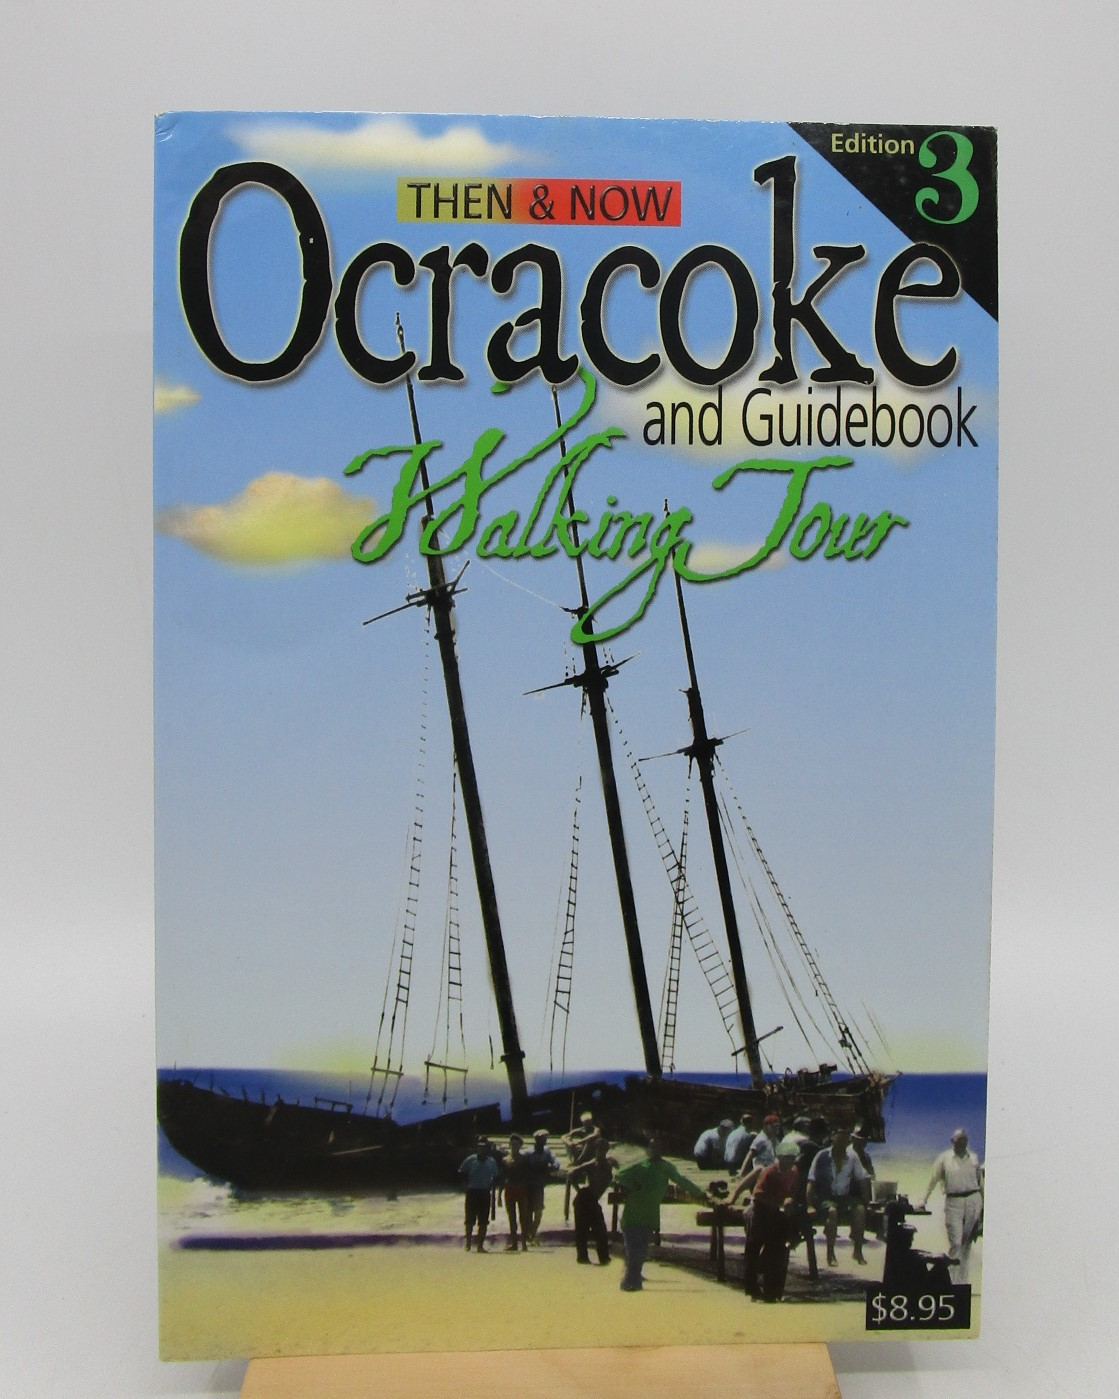 Image for Then & Now Ocracoke Walking Tour and Guidebook